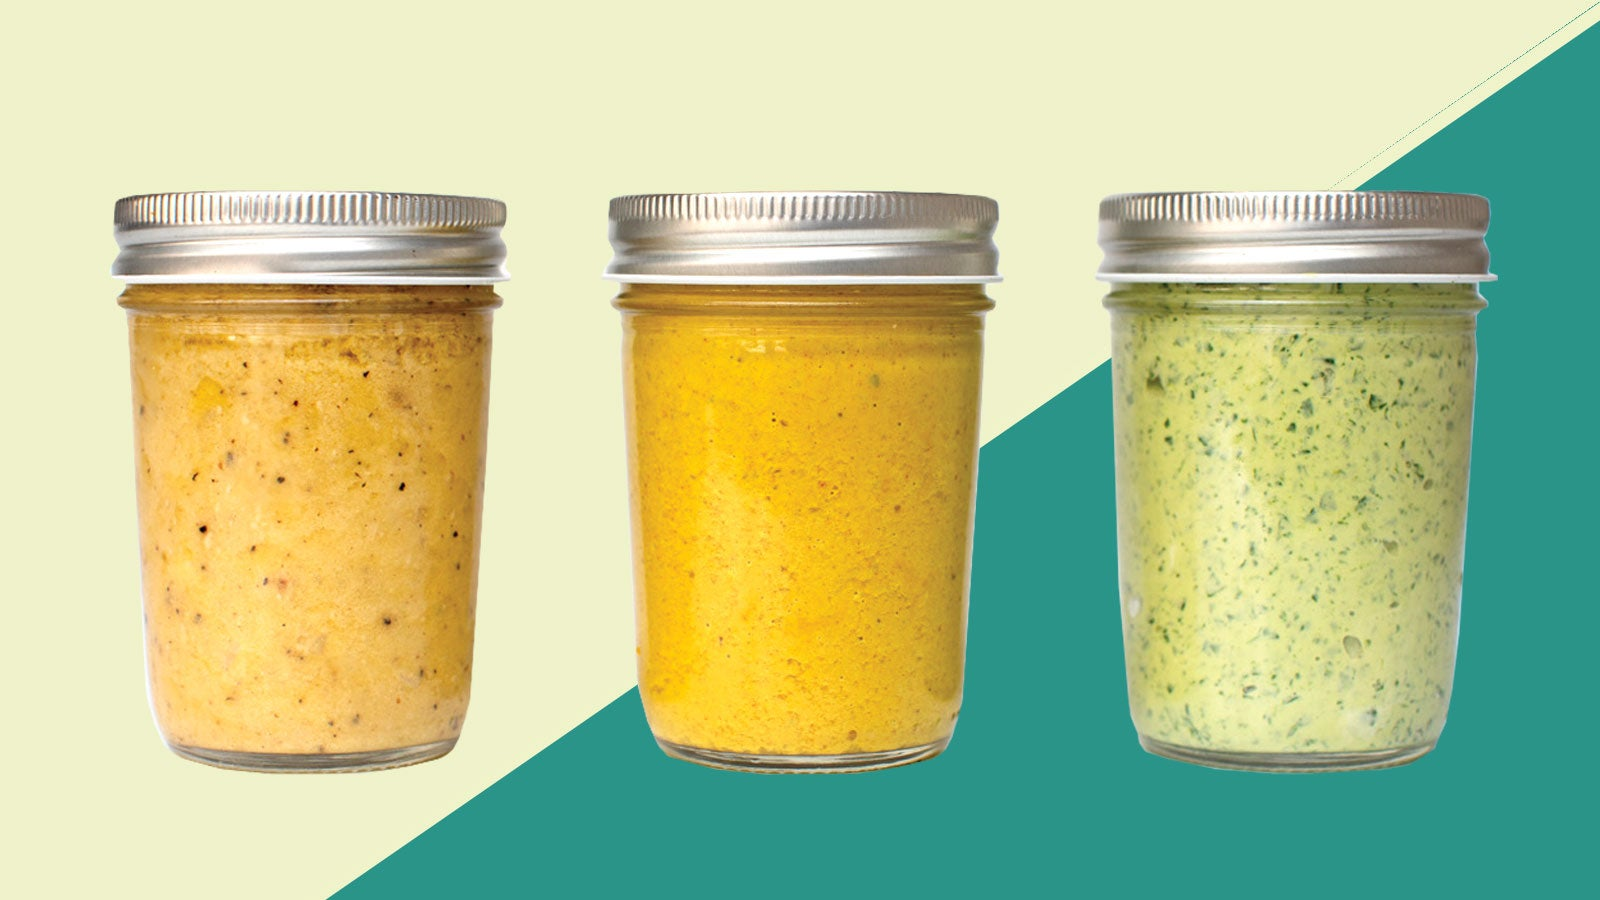 Improve Your Weekly Meal Prep with Three Delicious Sauces from Elyse Kopecky